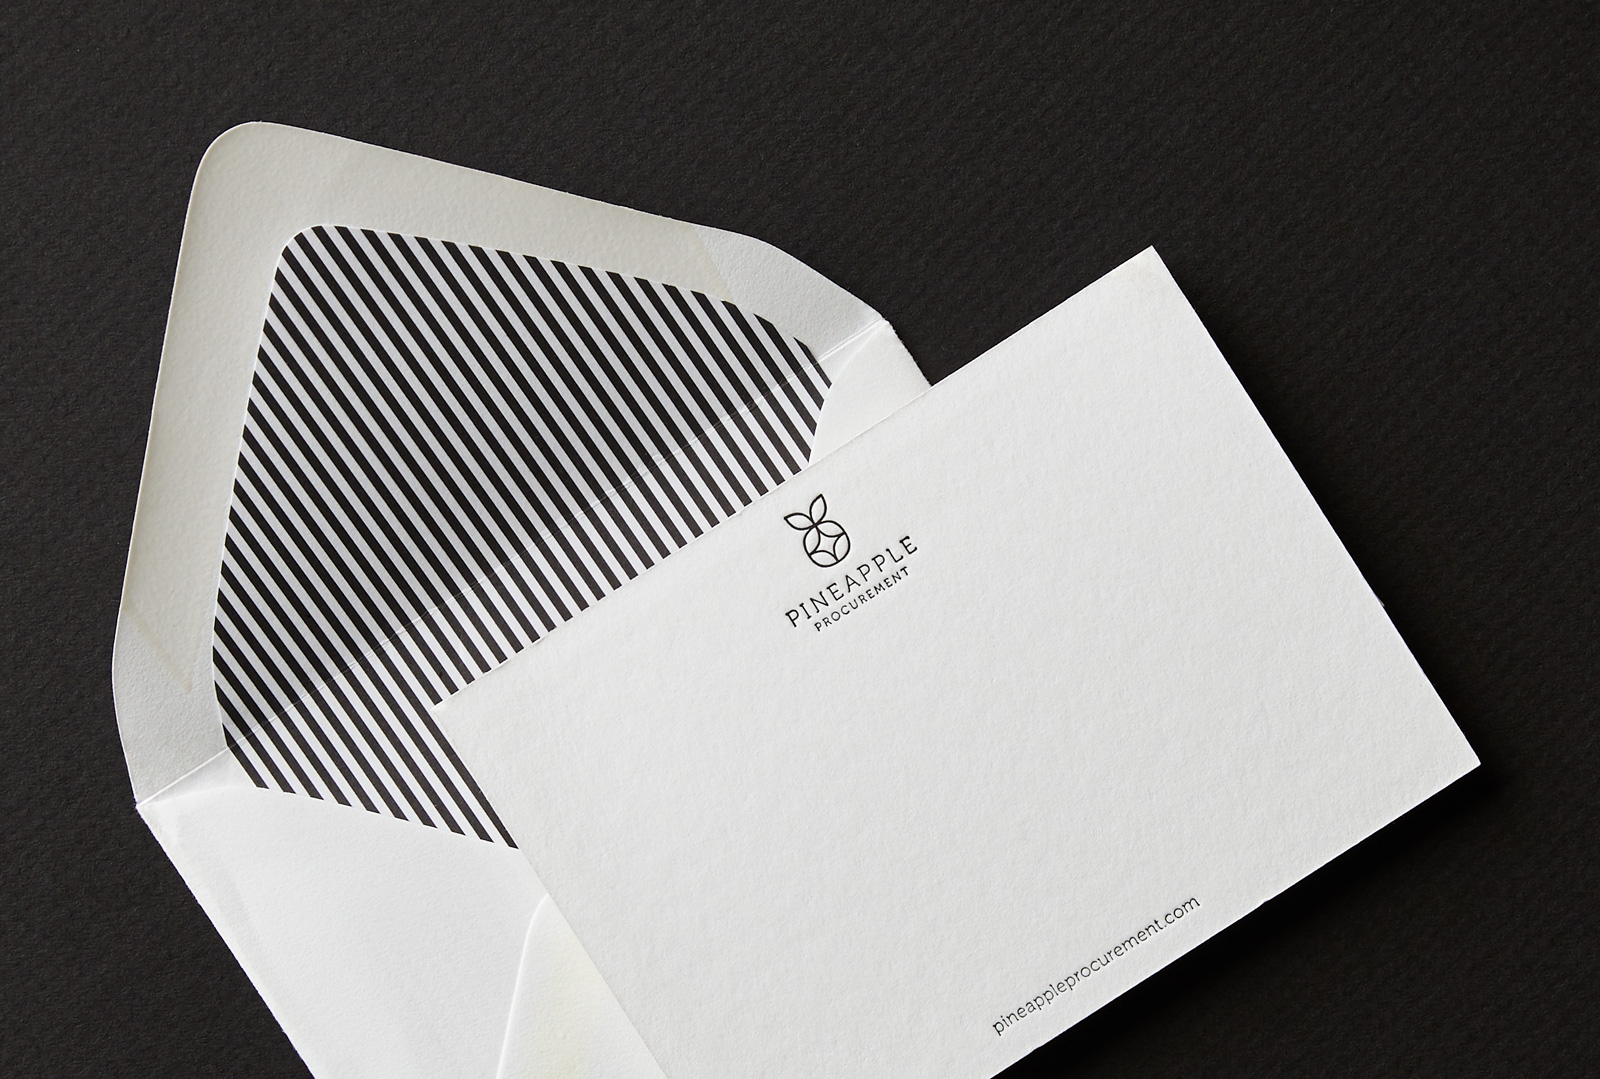 A white Pineapple Procurement notecard shown with an open envelope with a stripe pattern on the inside flap.